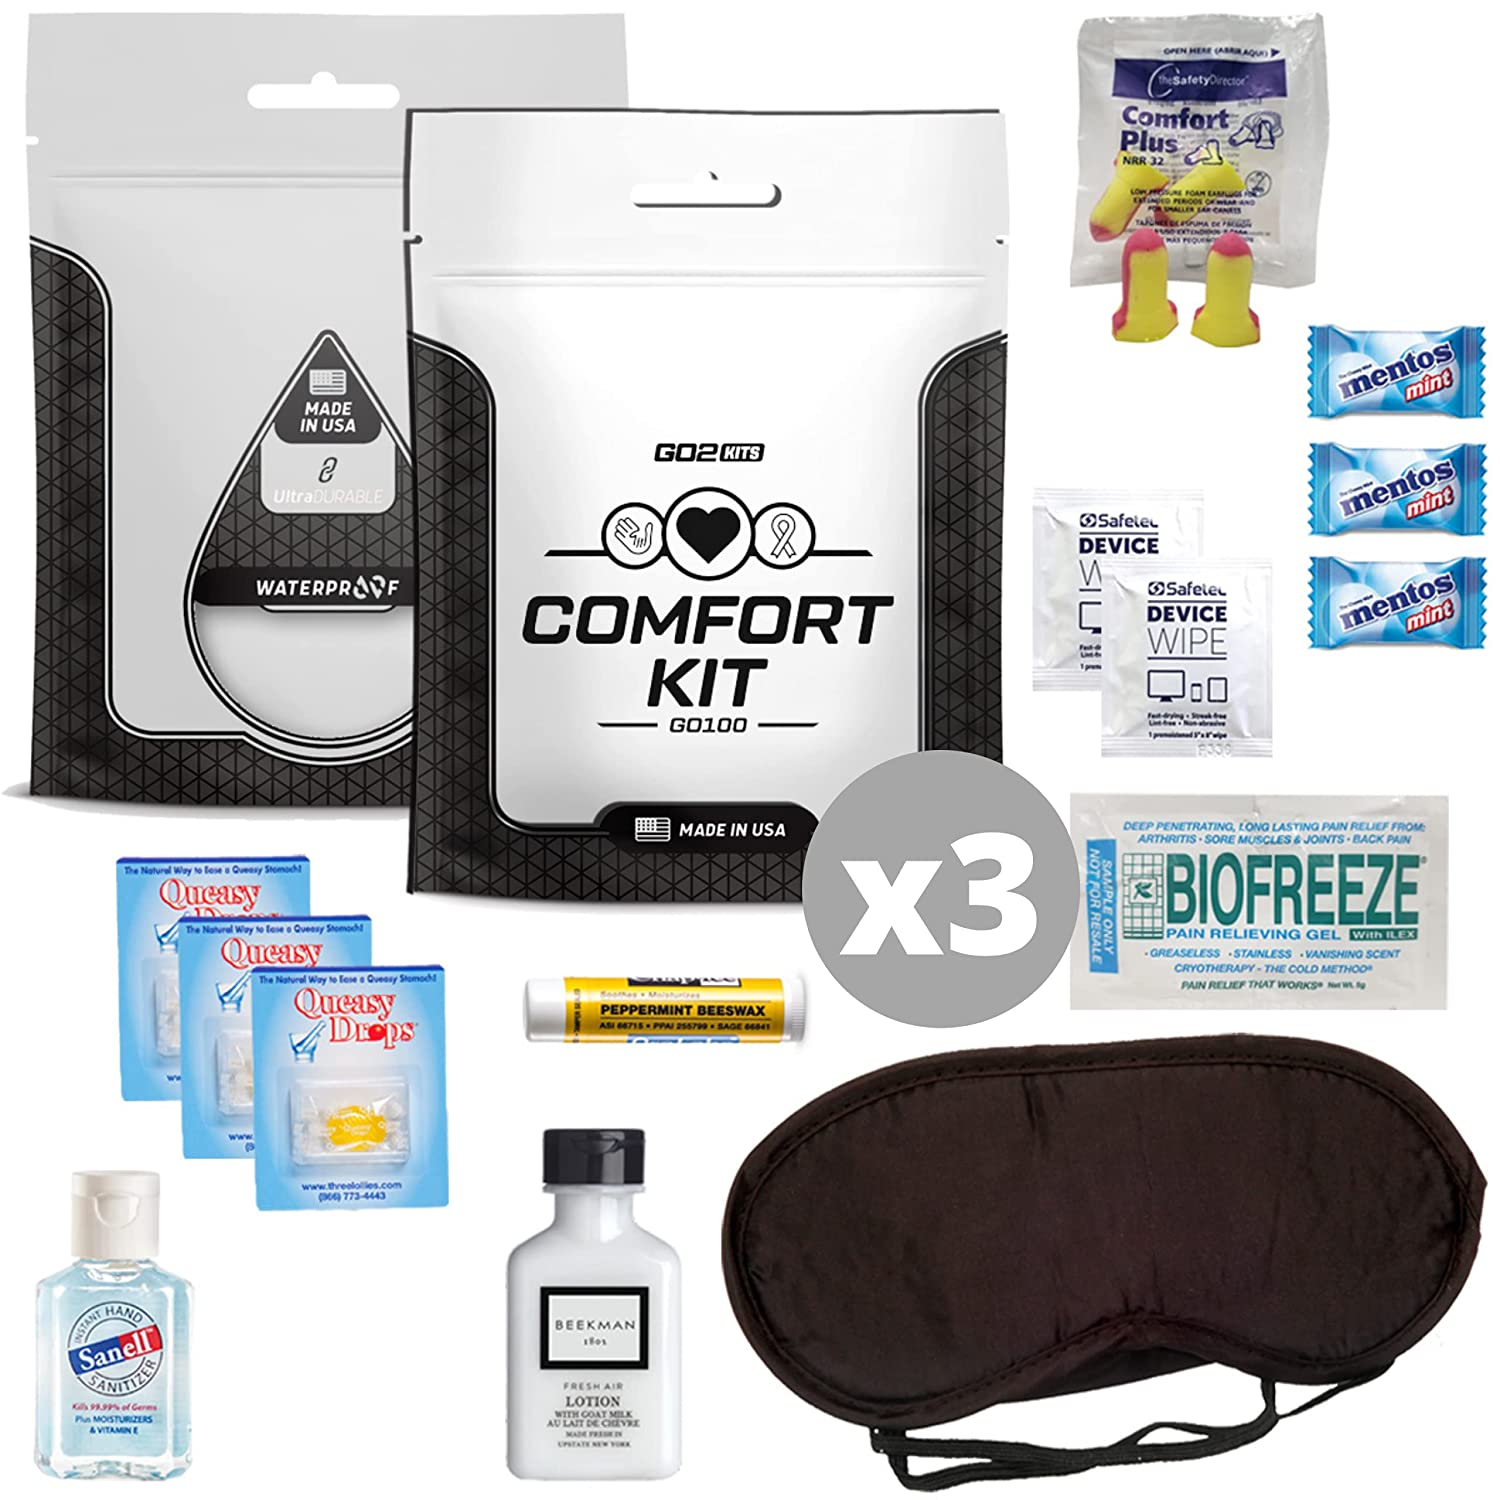 Go2Kits Outlet sale feature Comfort Care Max 88% OFF Kit for Pregnancy Patient Chemo incl